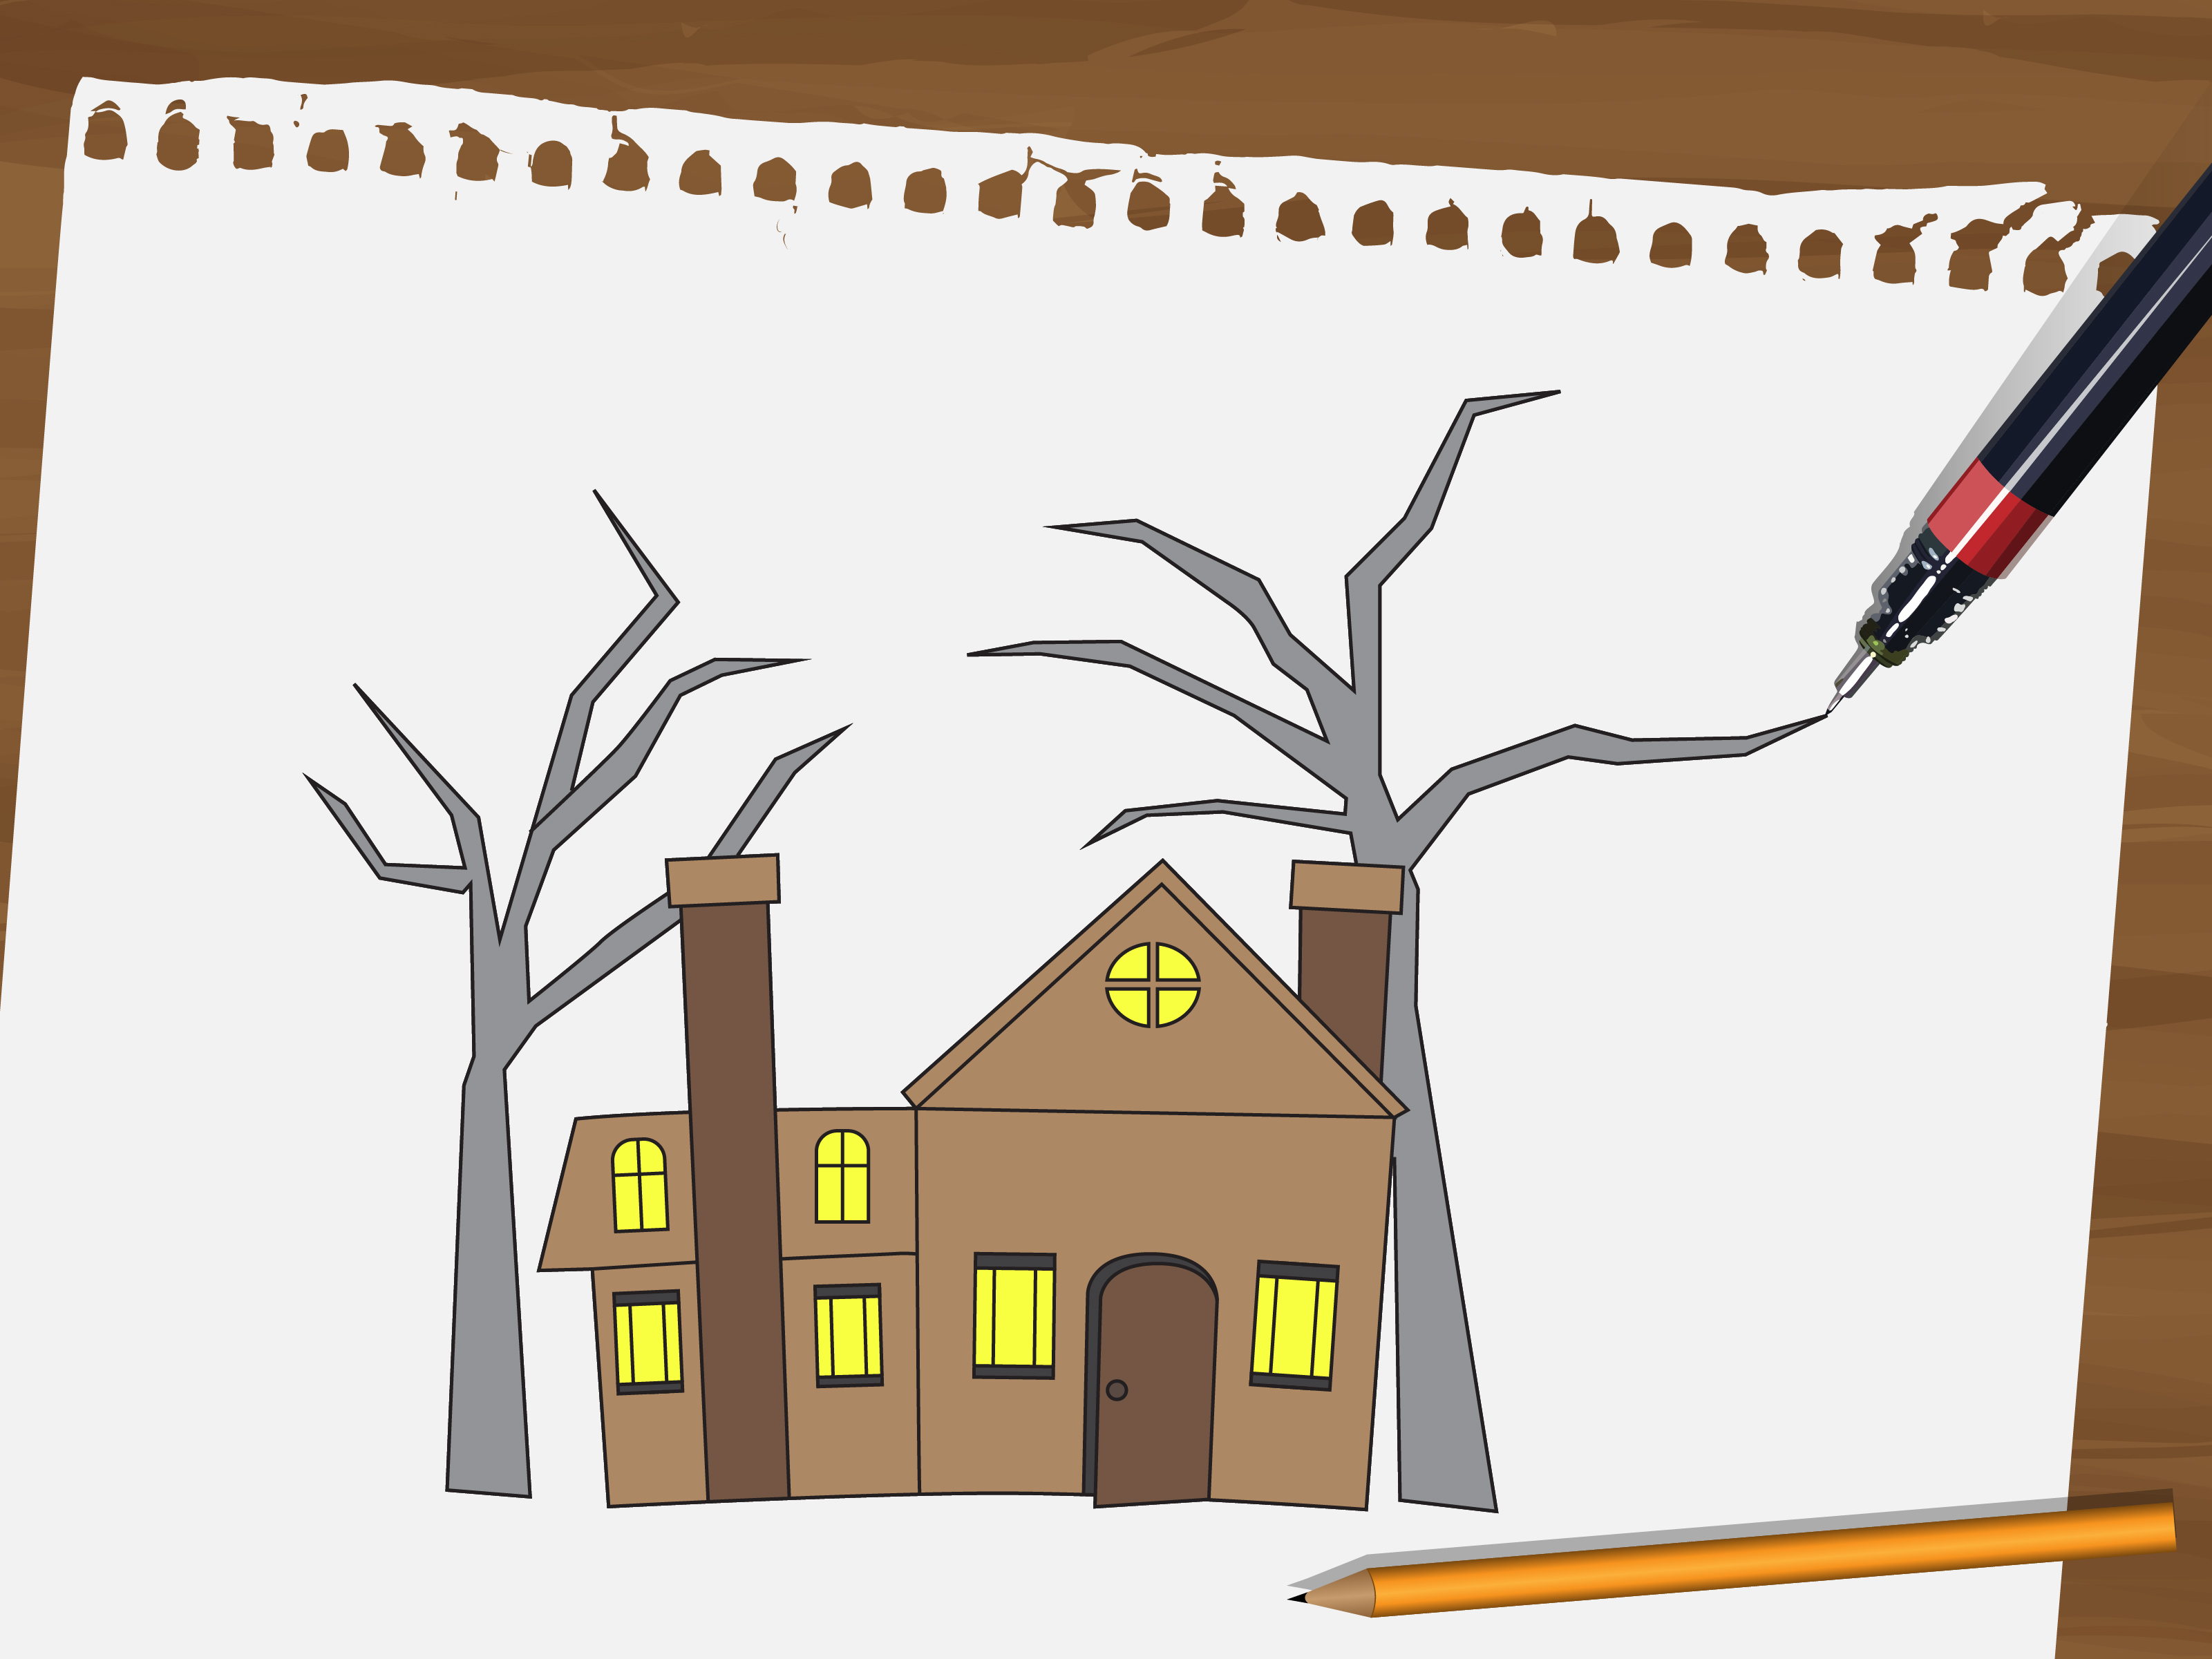 Old House clipart ghost house A Haunted 15 wikiHow Draw